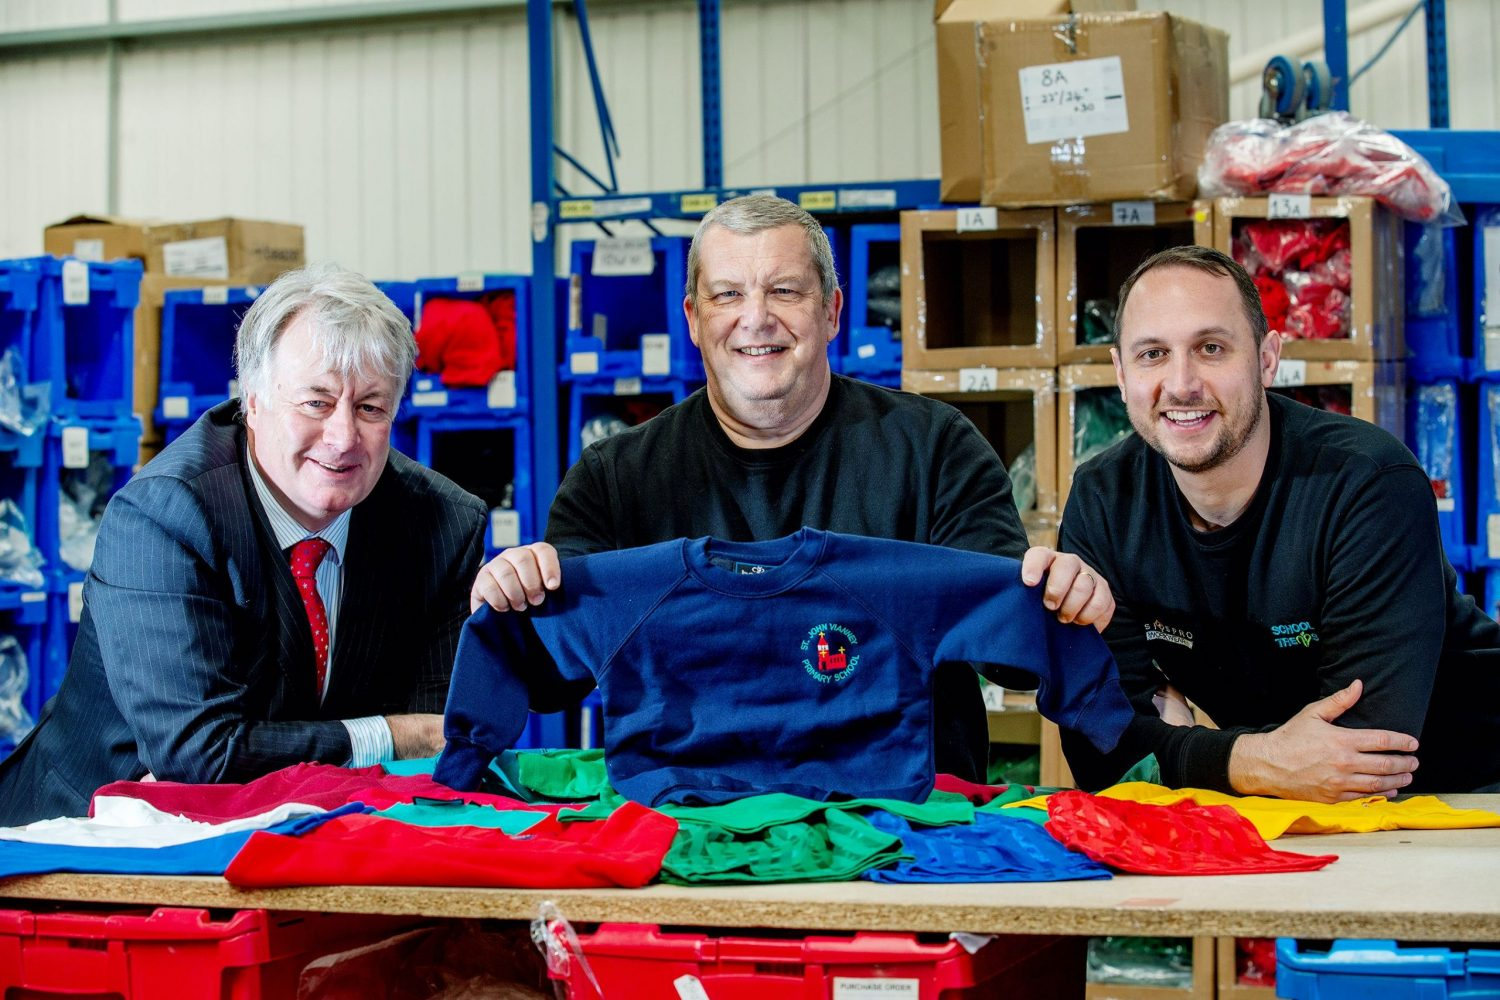 Three men in a clothing factory, man in the middle holding up a blue sweat shirt with a red logo, bearded man to the right hand side wearing a blue sweat shirt and man at the left hand end wearing a blue suit with a red tie has grey hair.